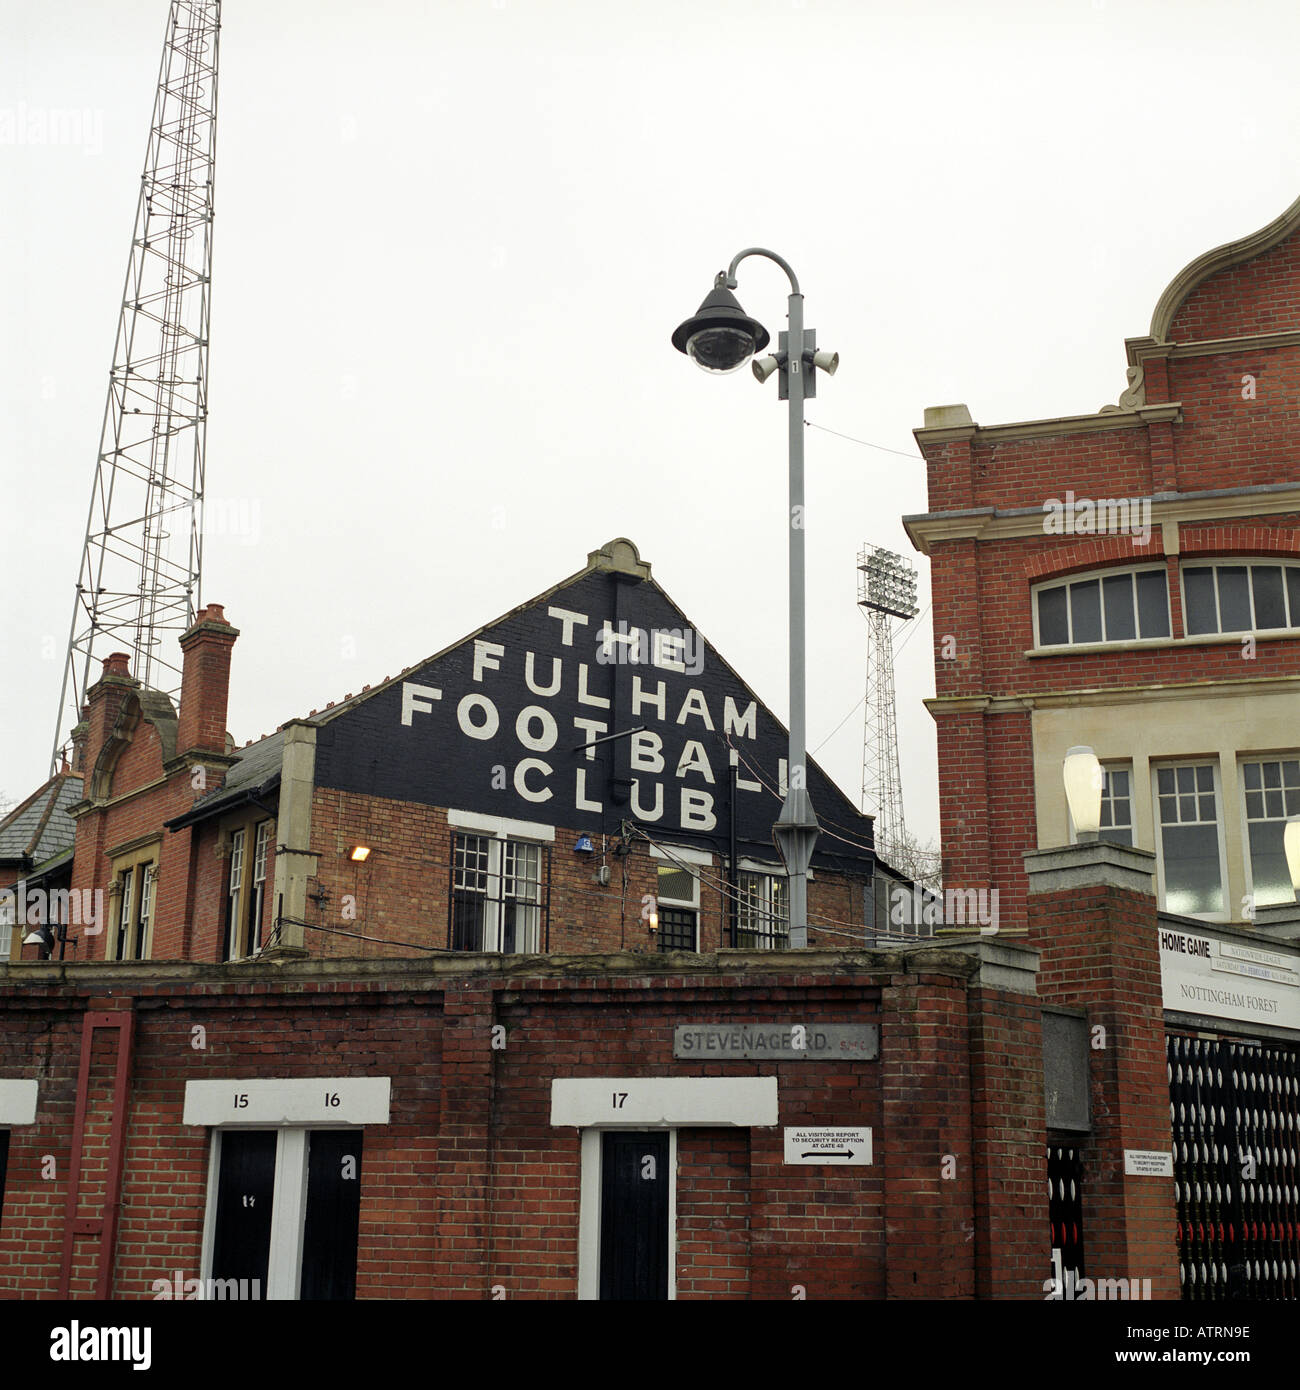 Craven Cottage, home of Fulham Football Club. - Stock Image